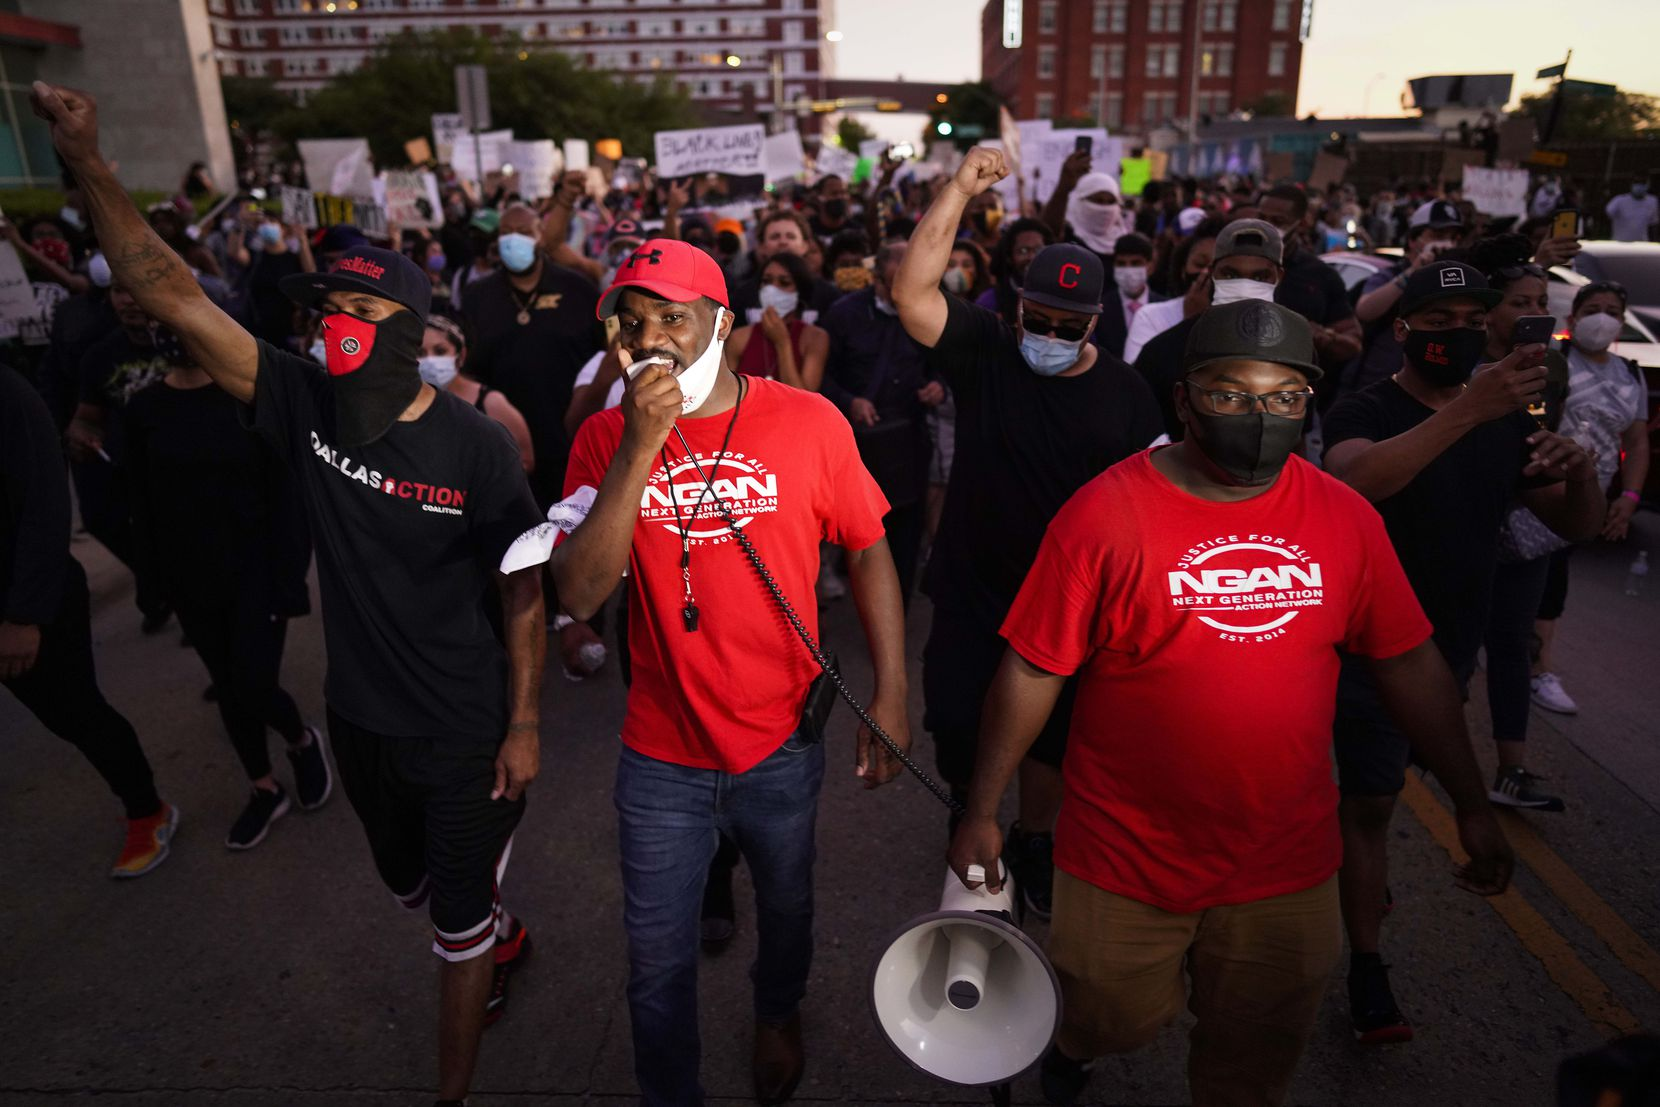 Dominique Alexander, the head of Next Generation Action Network, leads a march against police brutality as the depart a rally at they Dallas Police Headquarters on Friday, May 29, 2020, in Dallas.